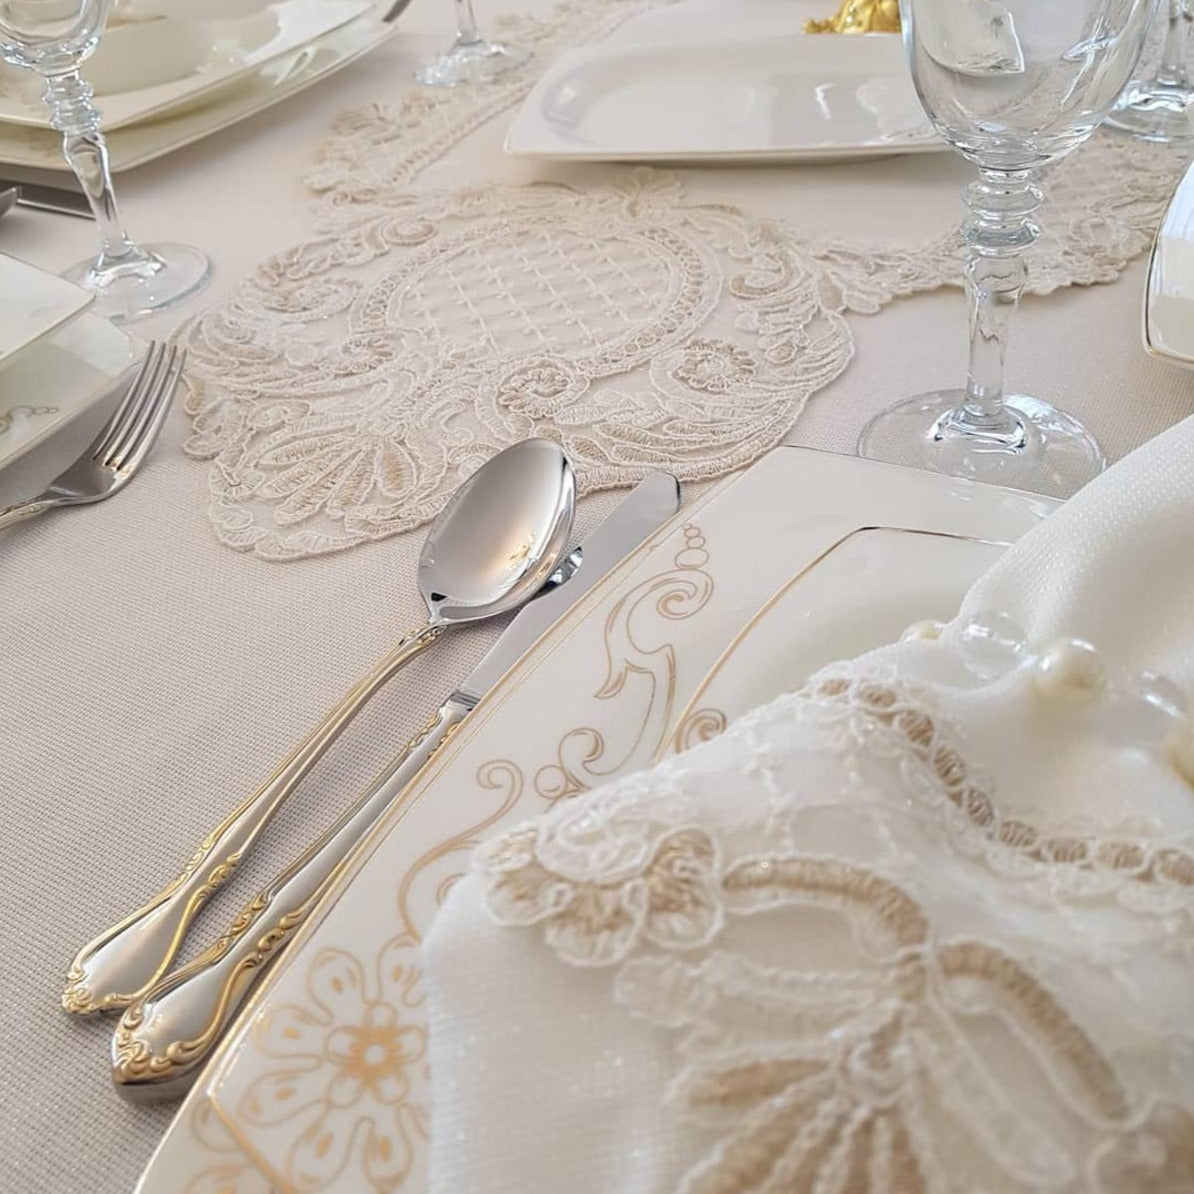 Set of 26 Pieces Luxury French Lace Tablecloth (serves 12)